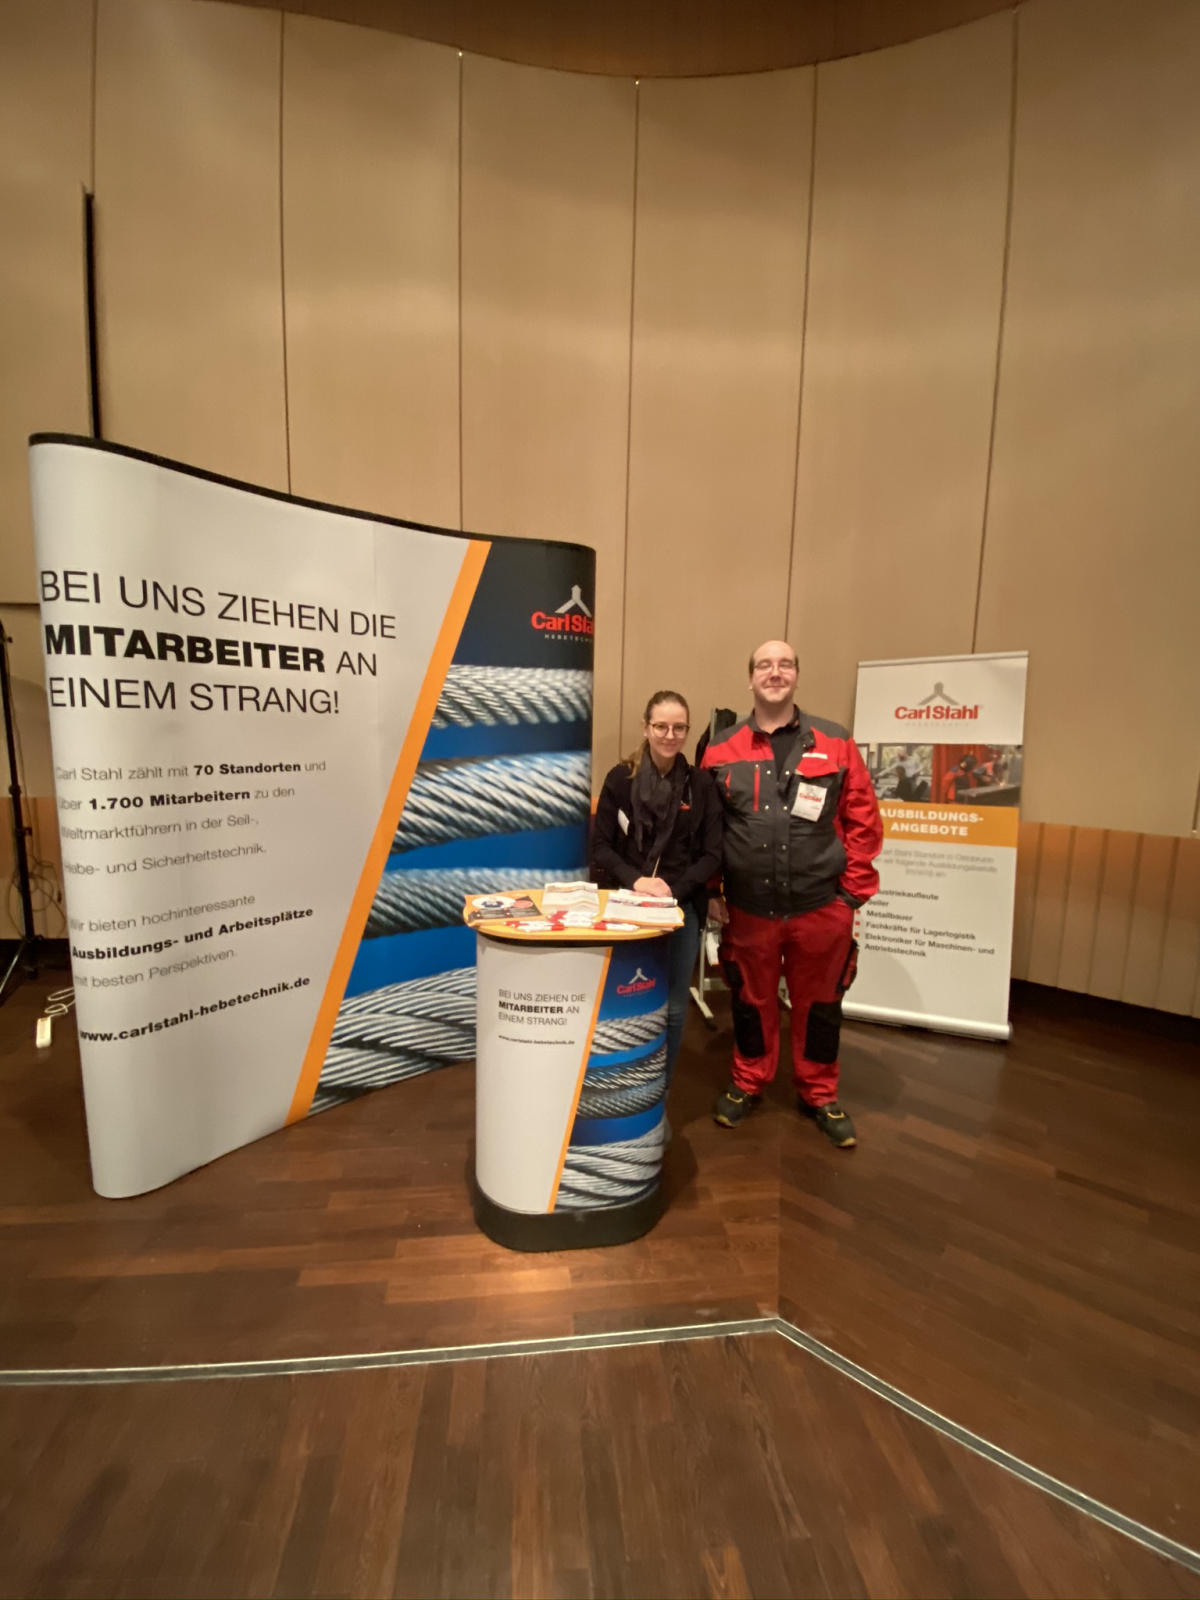 Zero-eight 12 instead of 0815 - Carl Stahl Süd GmbH at the job event in Taufkirchen